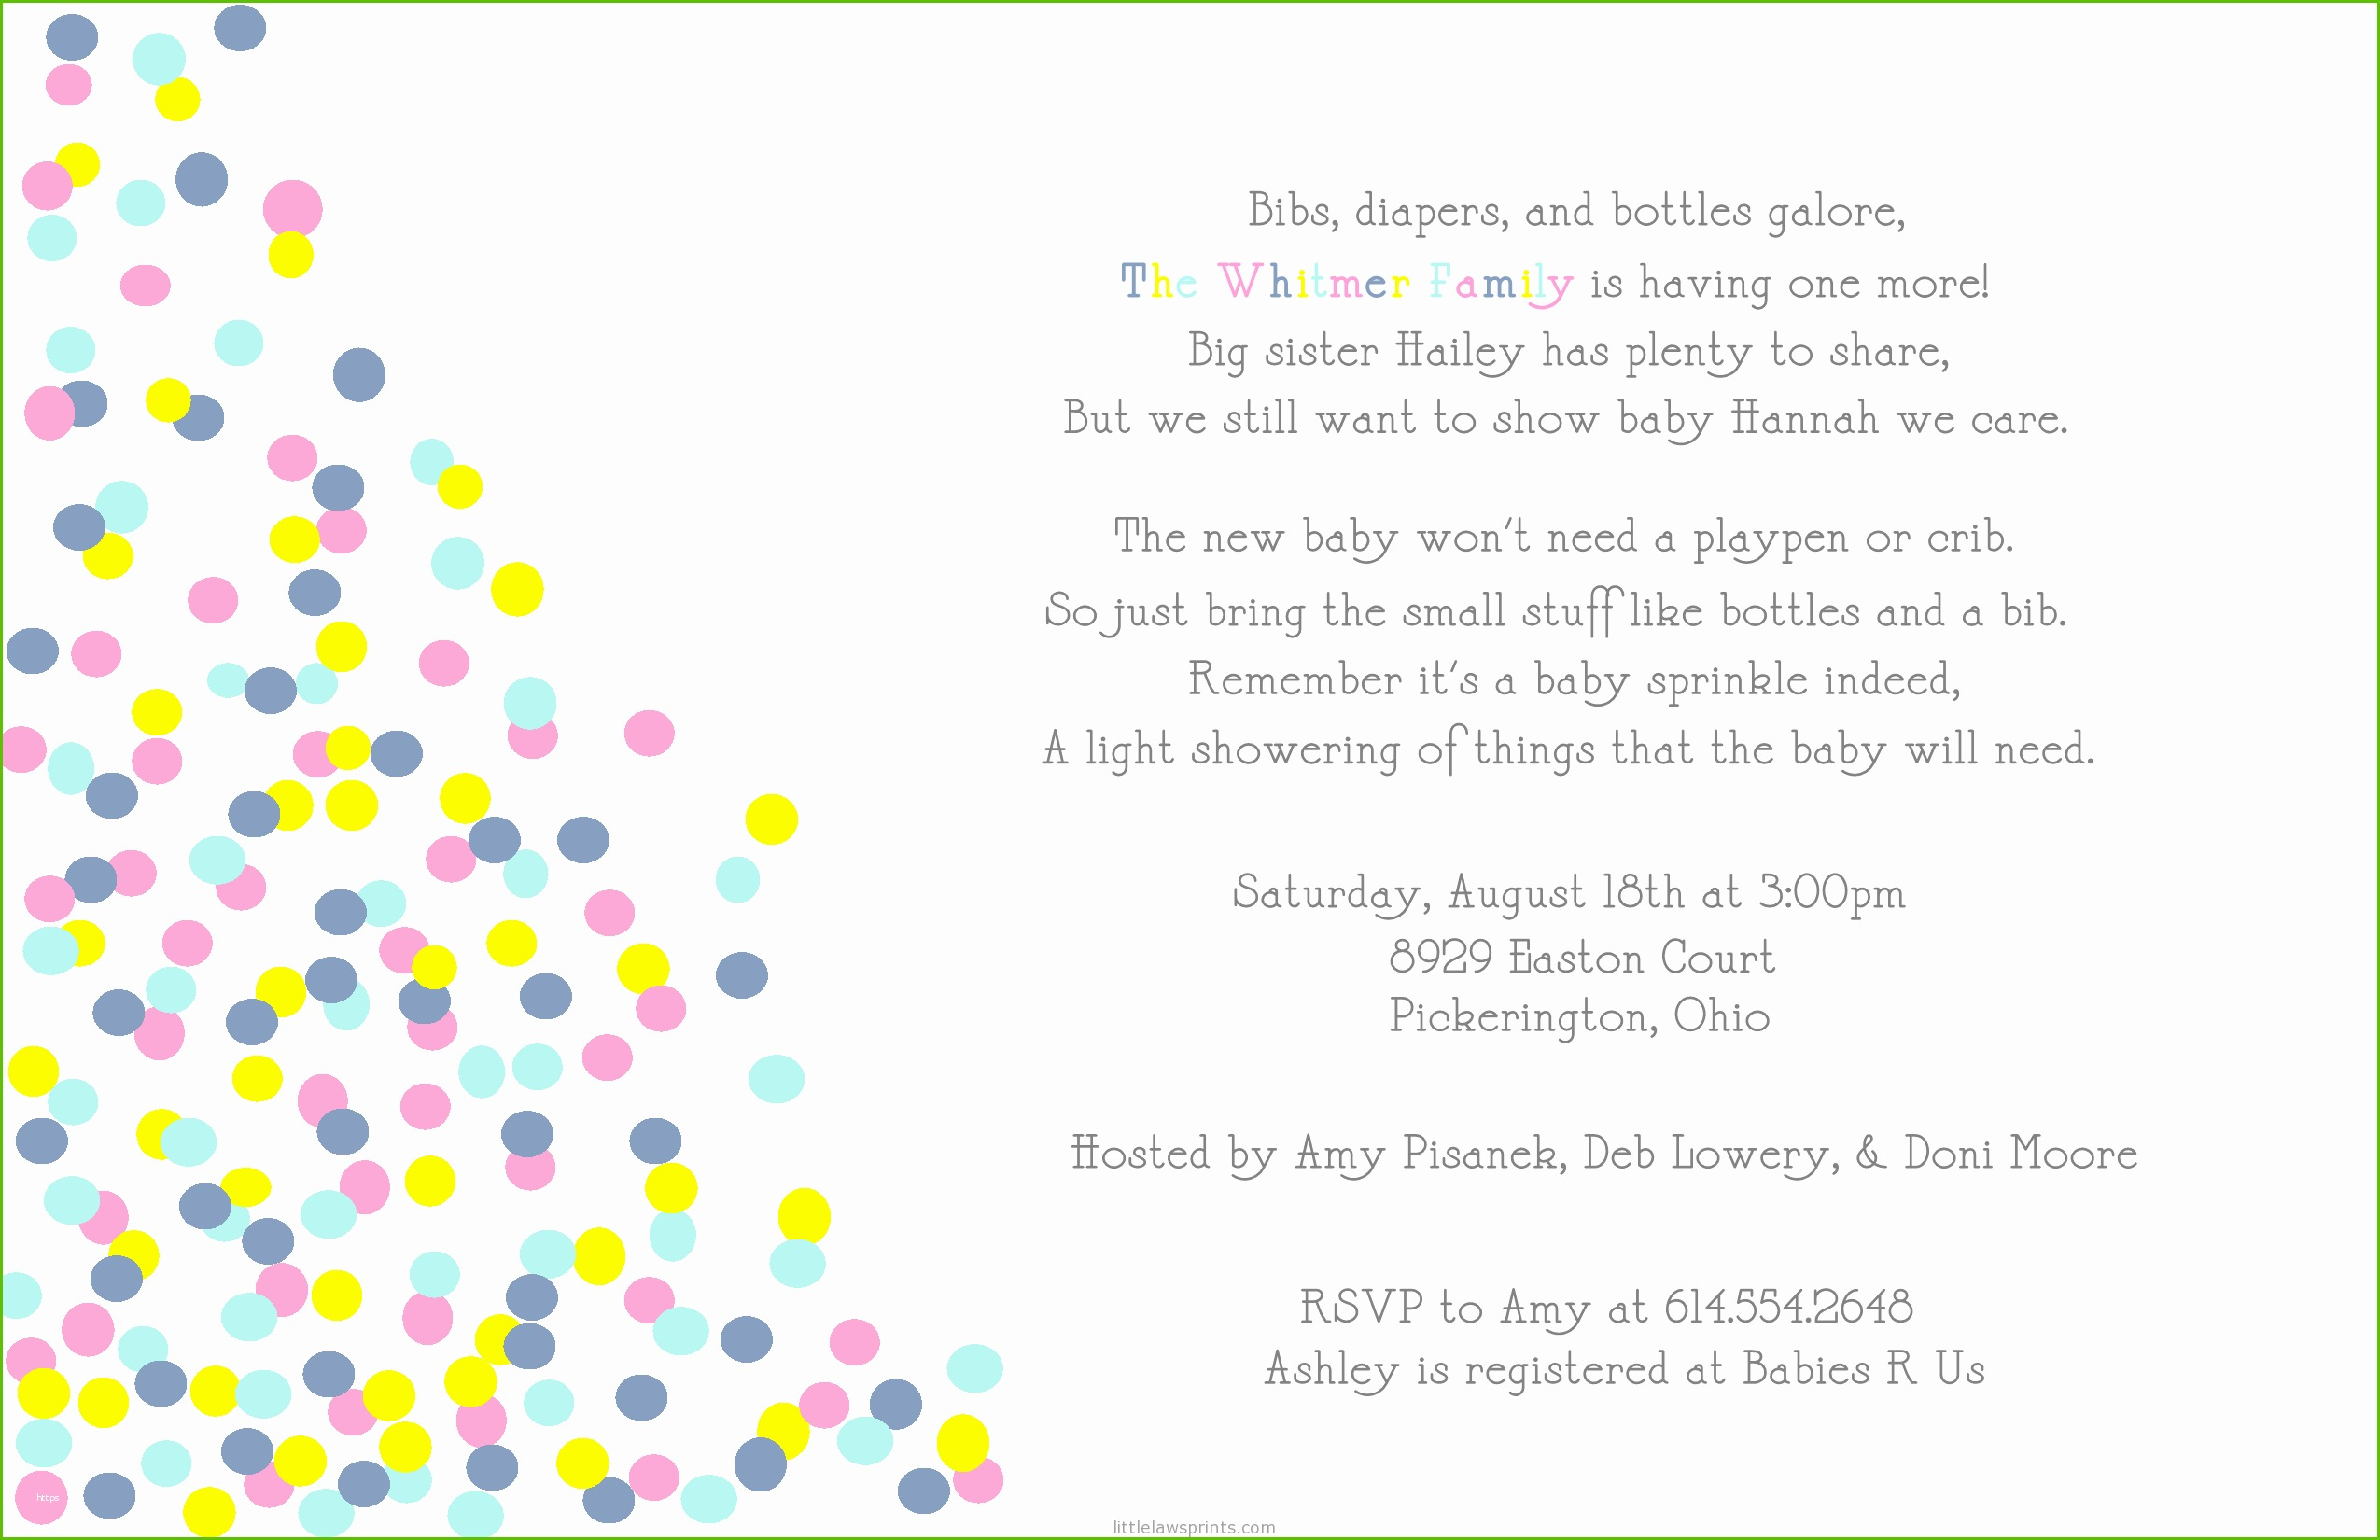 Full Size of Baby Shower:delightful Baby Shower Invitation Wording Picture Designs Baby Shower Invitation Wording As Well As Baby Shower Event With Baby Shower At The Park Plus Printable Baby Shower Cards Together With Baby Shower Hampers